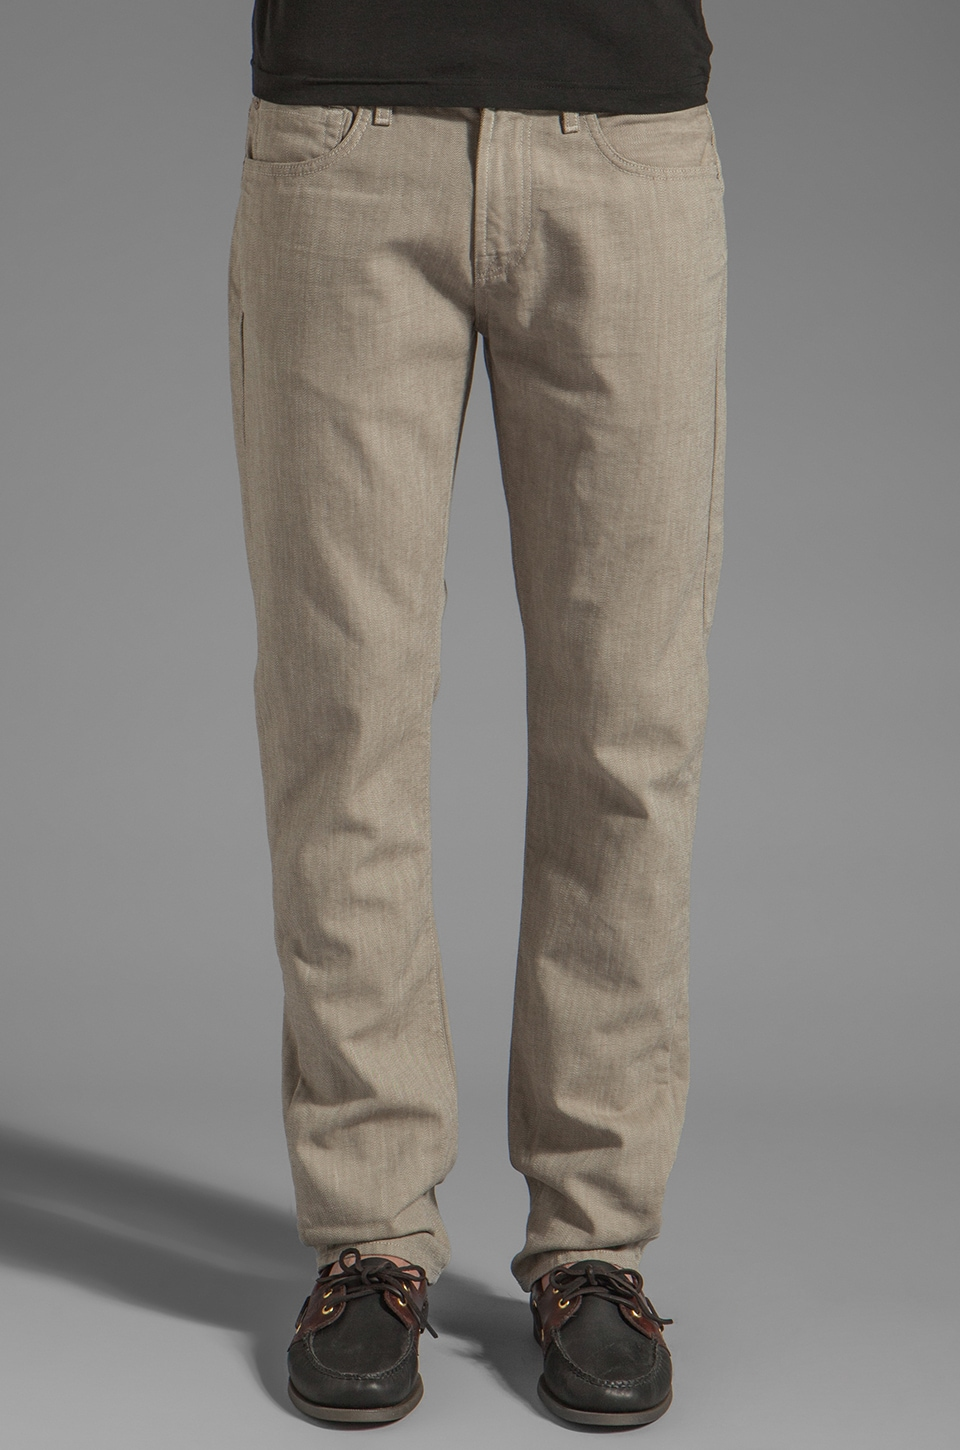 7 For All Mankind The Straight Leg in Coconut